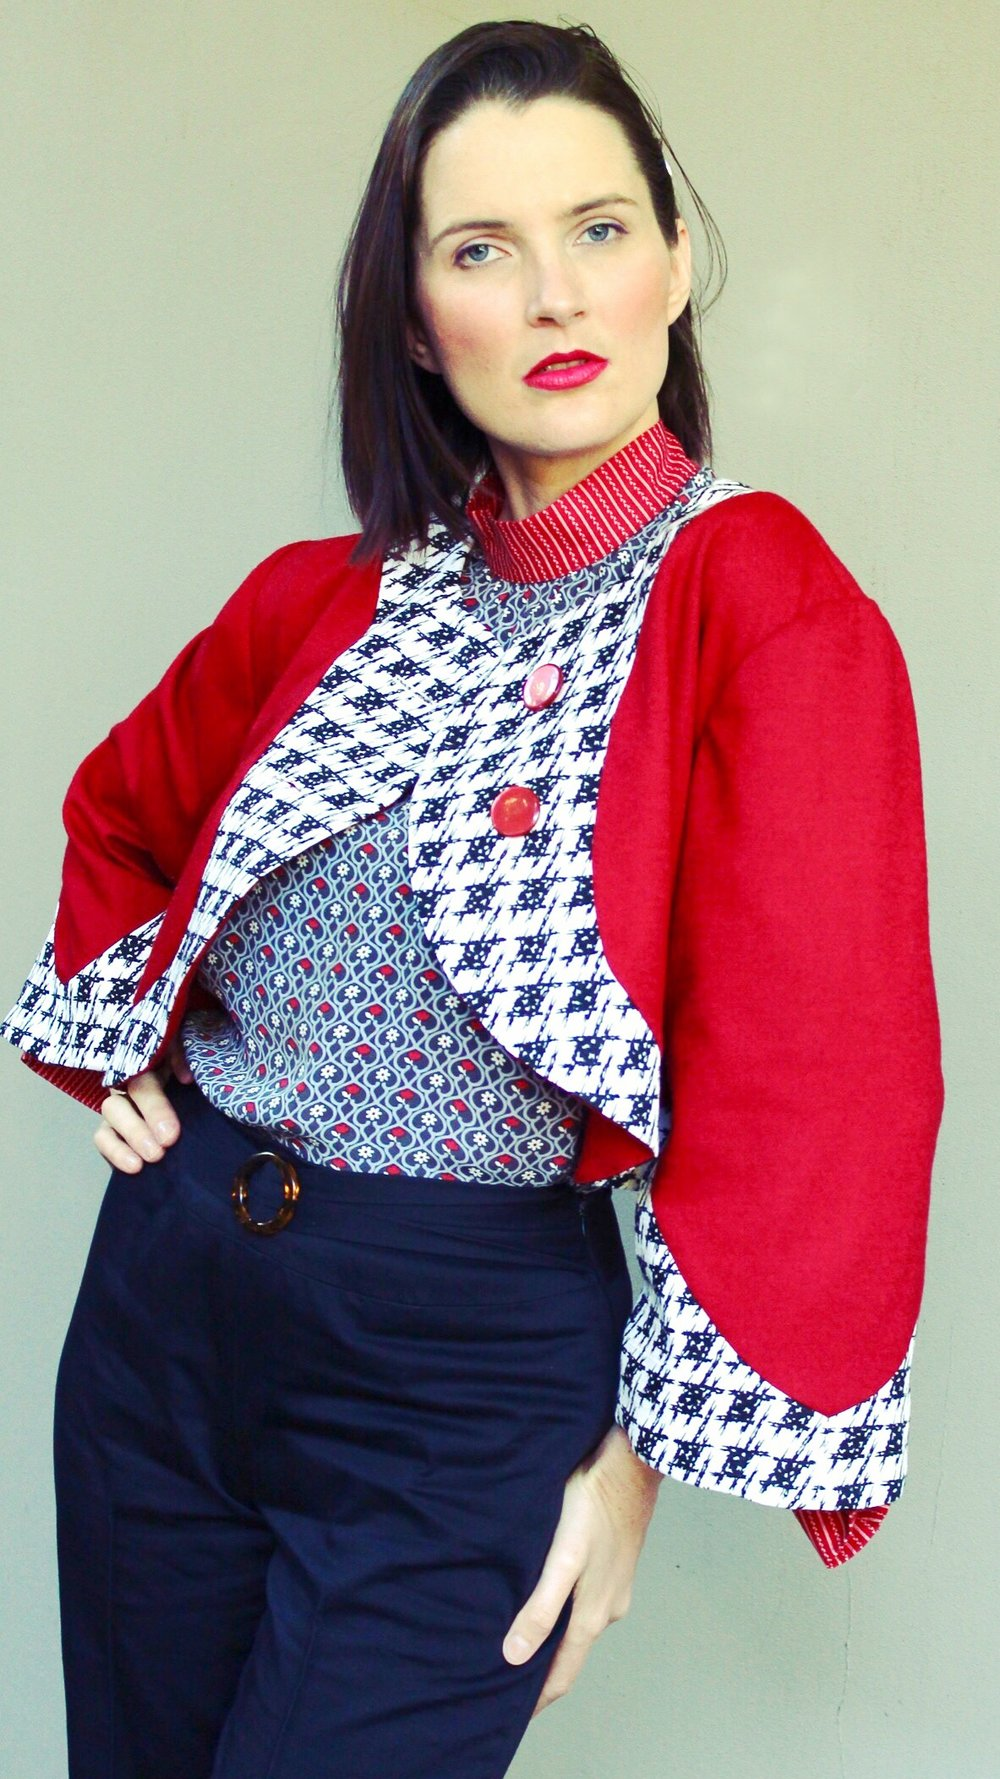 And again the current version I have created, the Red, Black and White Bolero. I only ever created two copies of his style, and only the size 8 is available. You can find it in the Penelope Red online shop here:   http://www.penelopered.com.au/shop/red-black-and-white-bolero-jacket